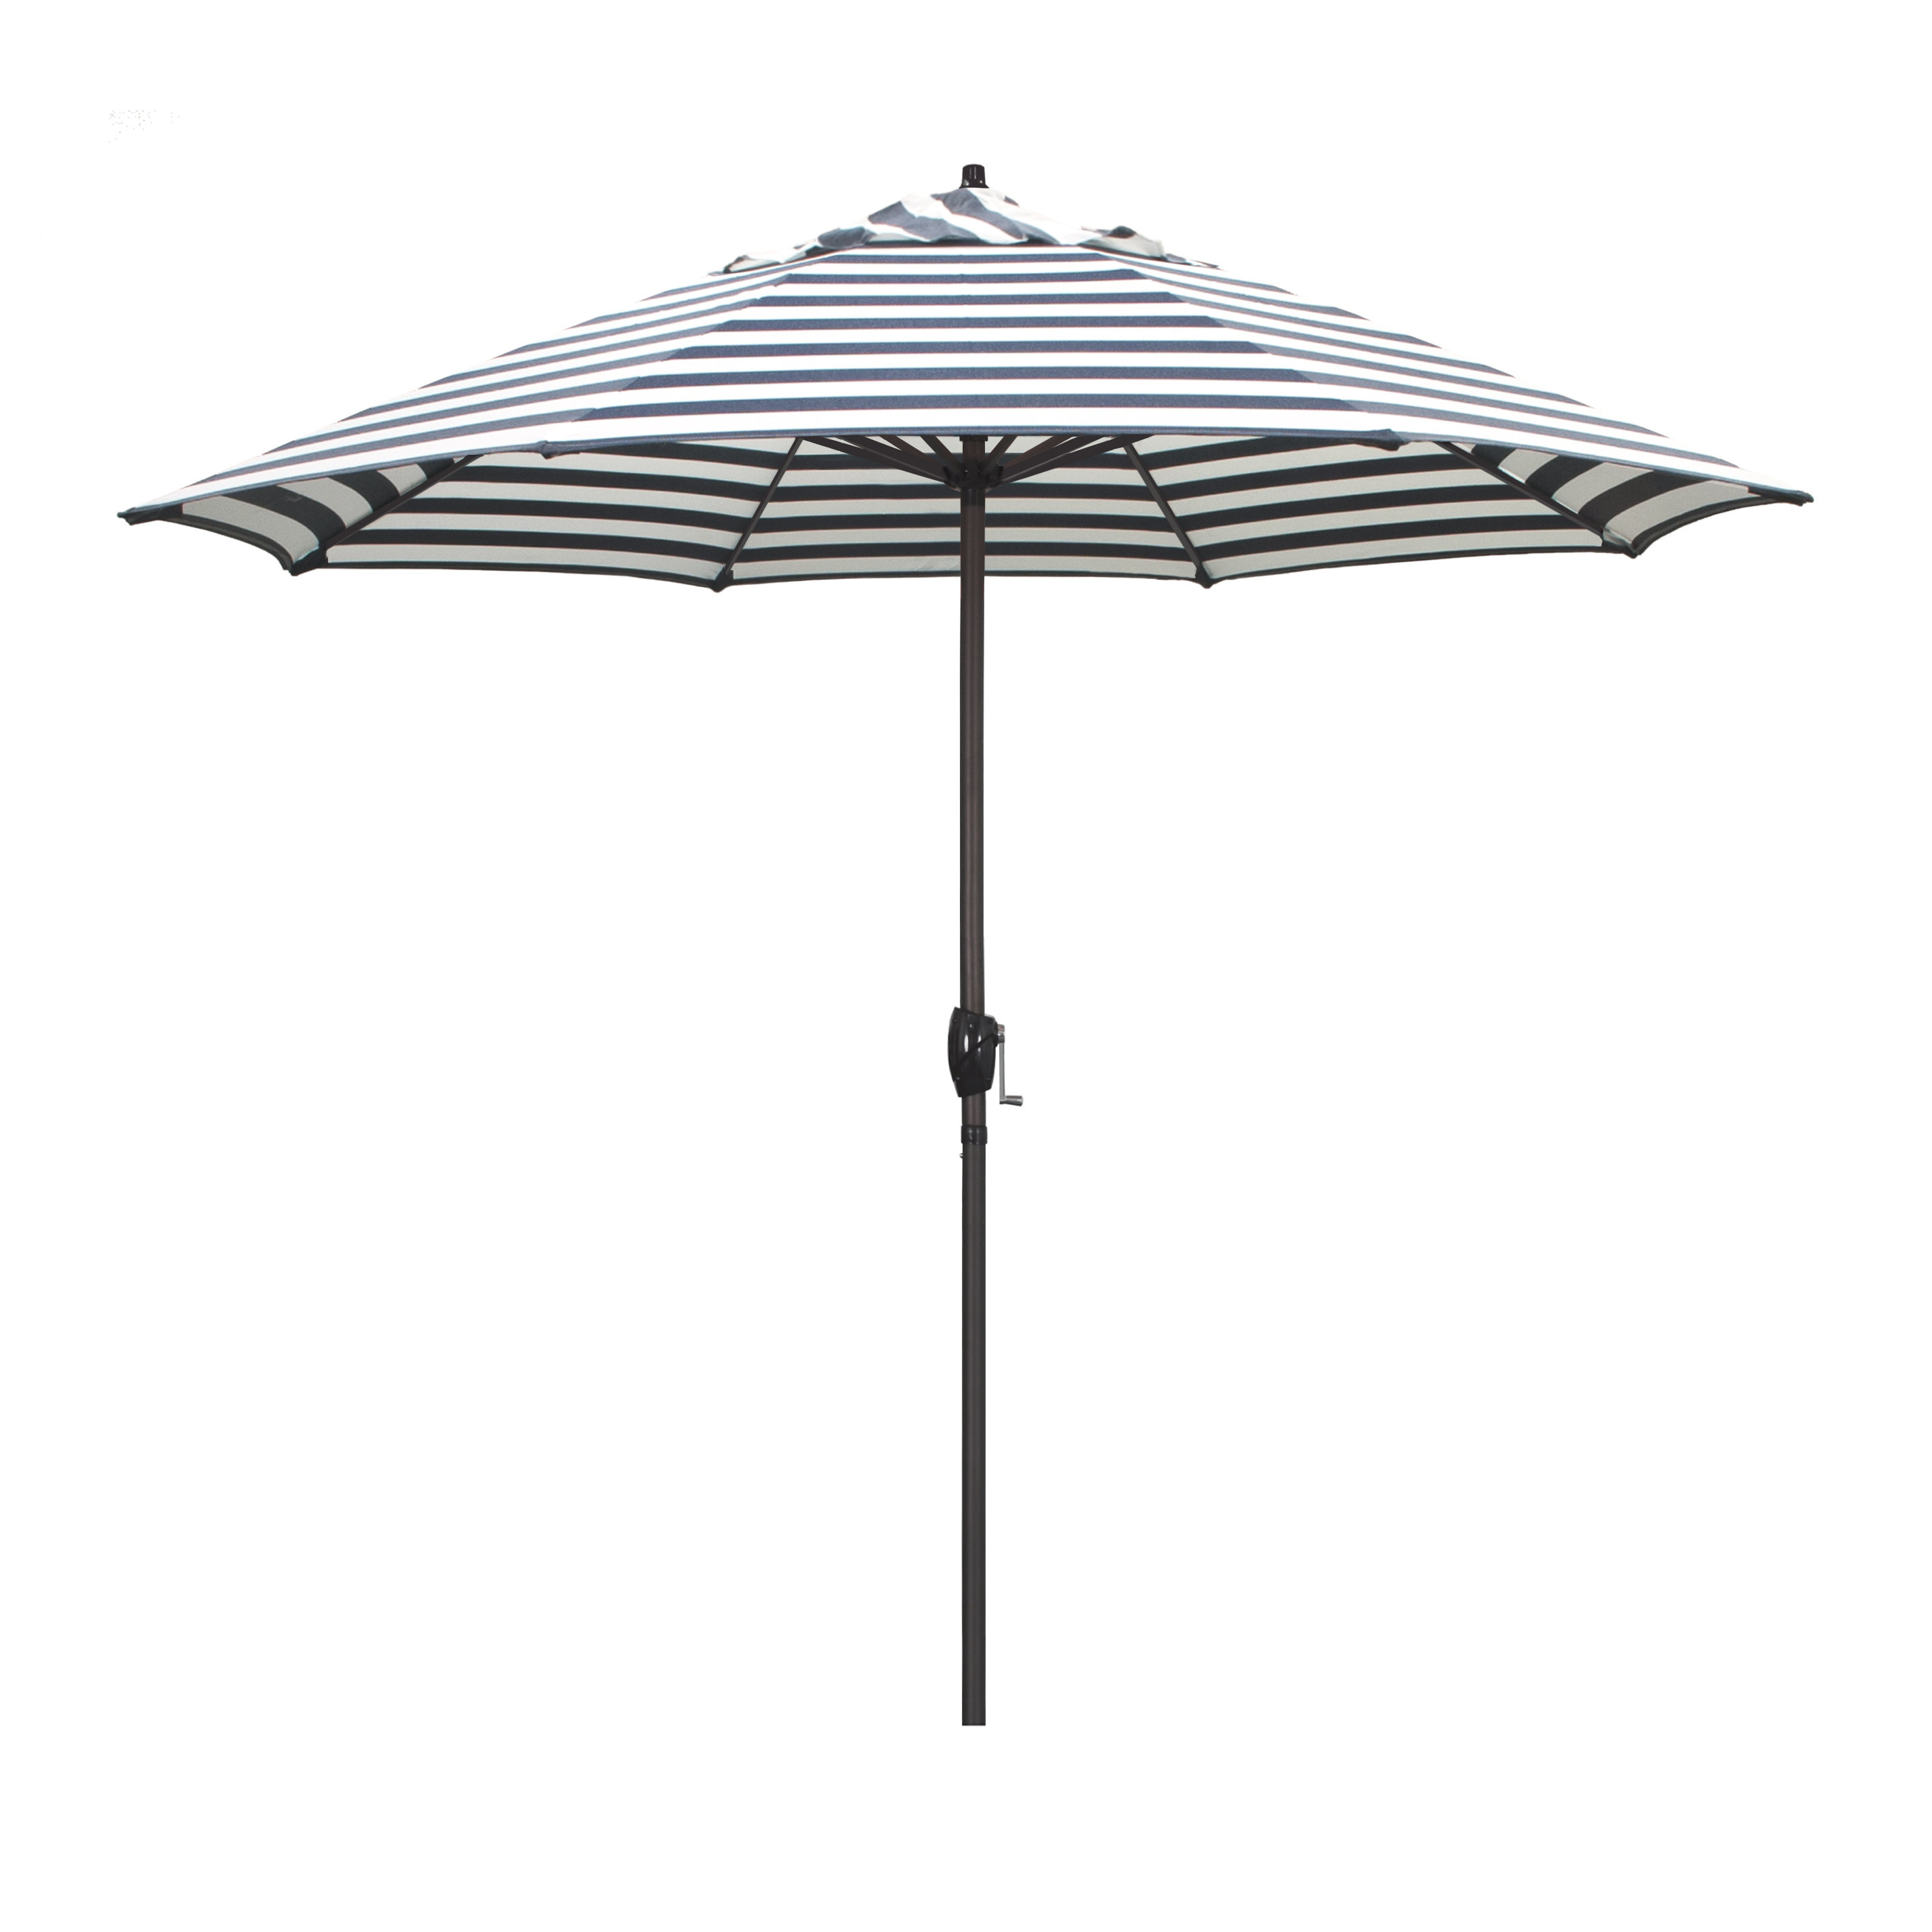 Best And Newest Cardine 9' Market Umbrella For Ryant Market Umbrellas (View 2 of 20)